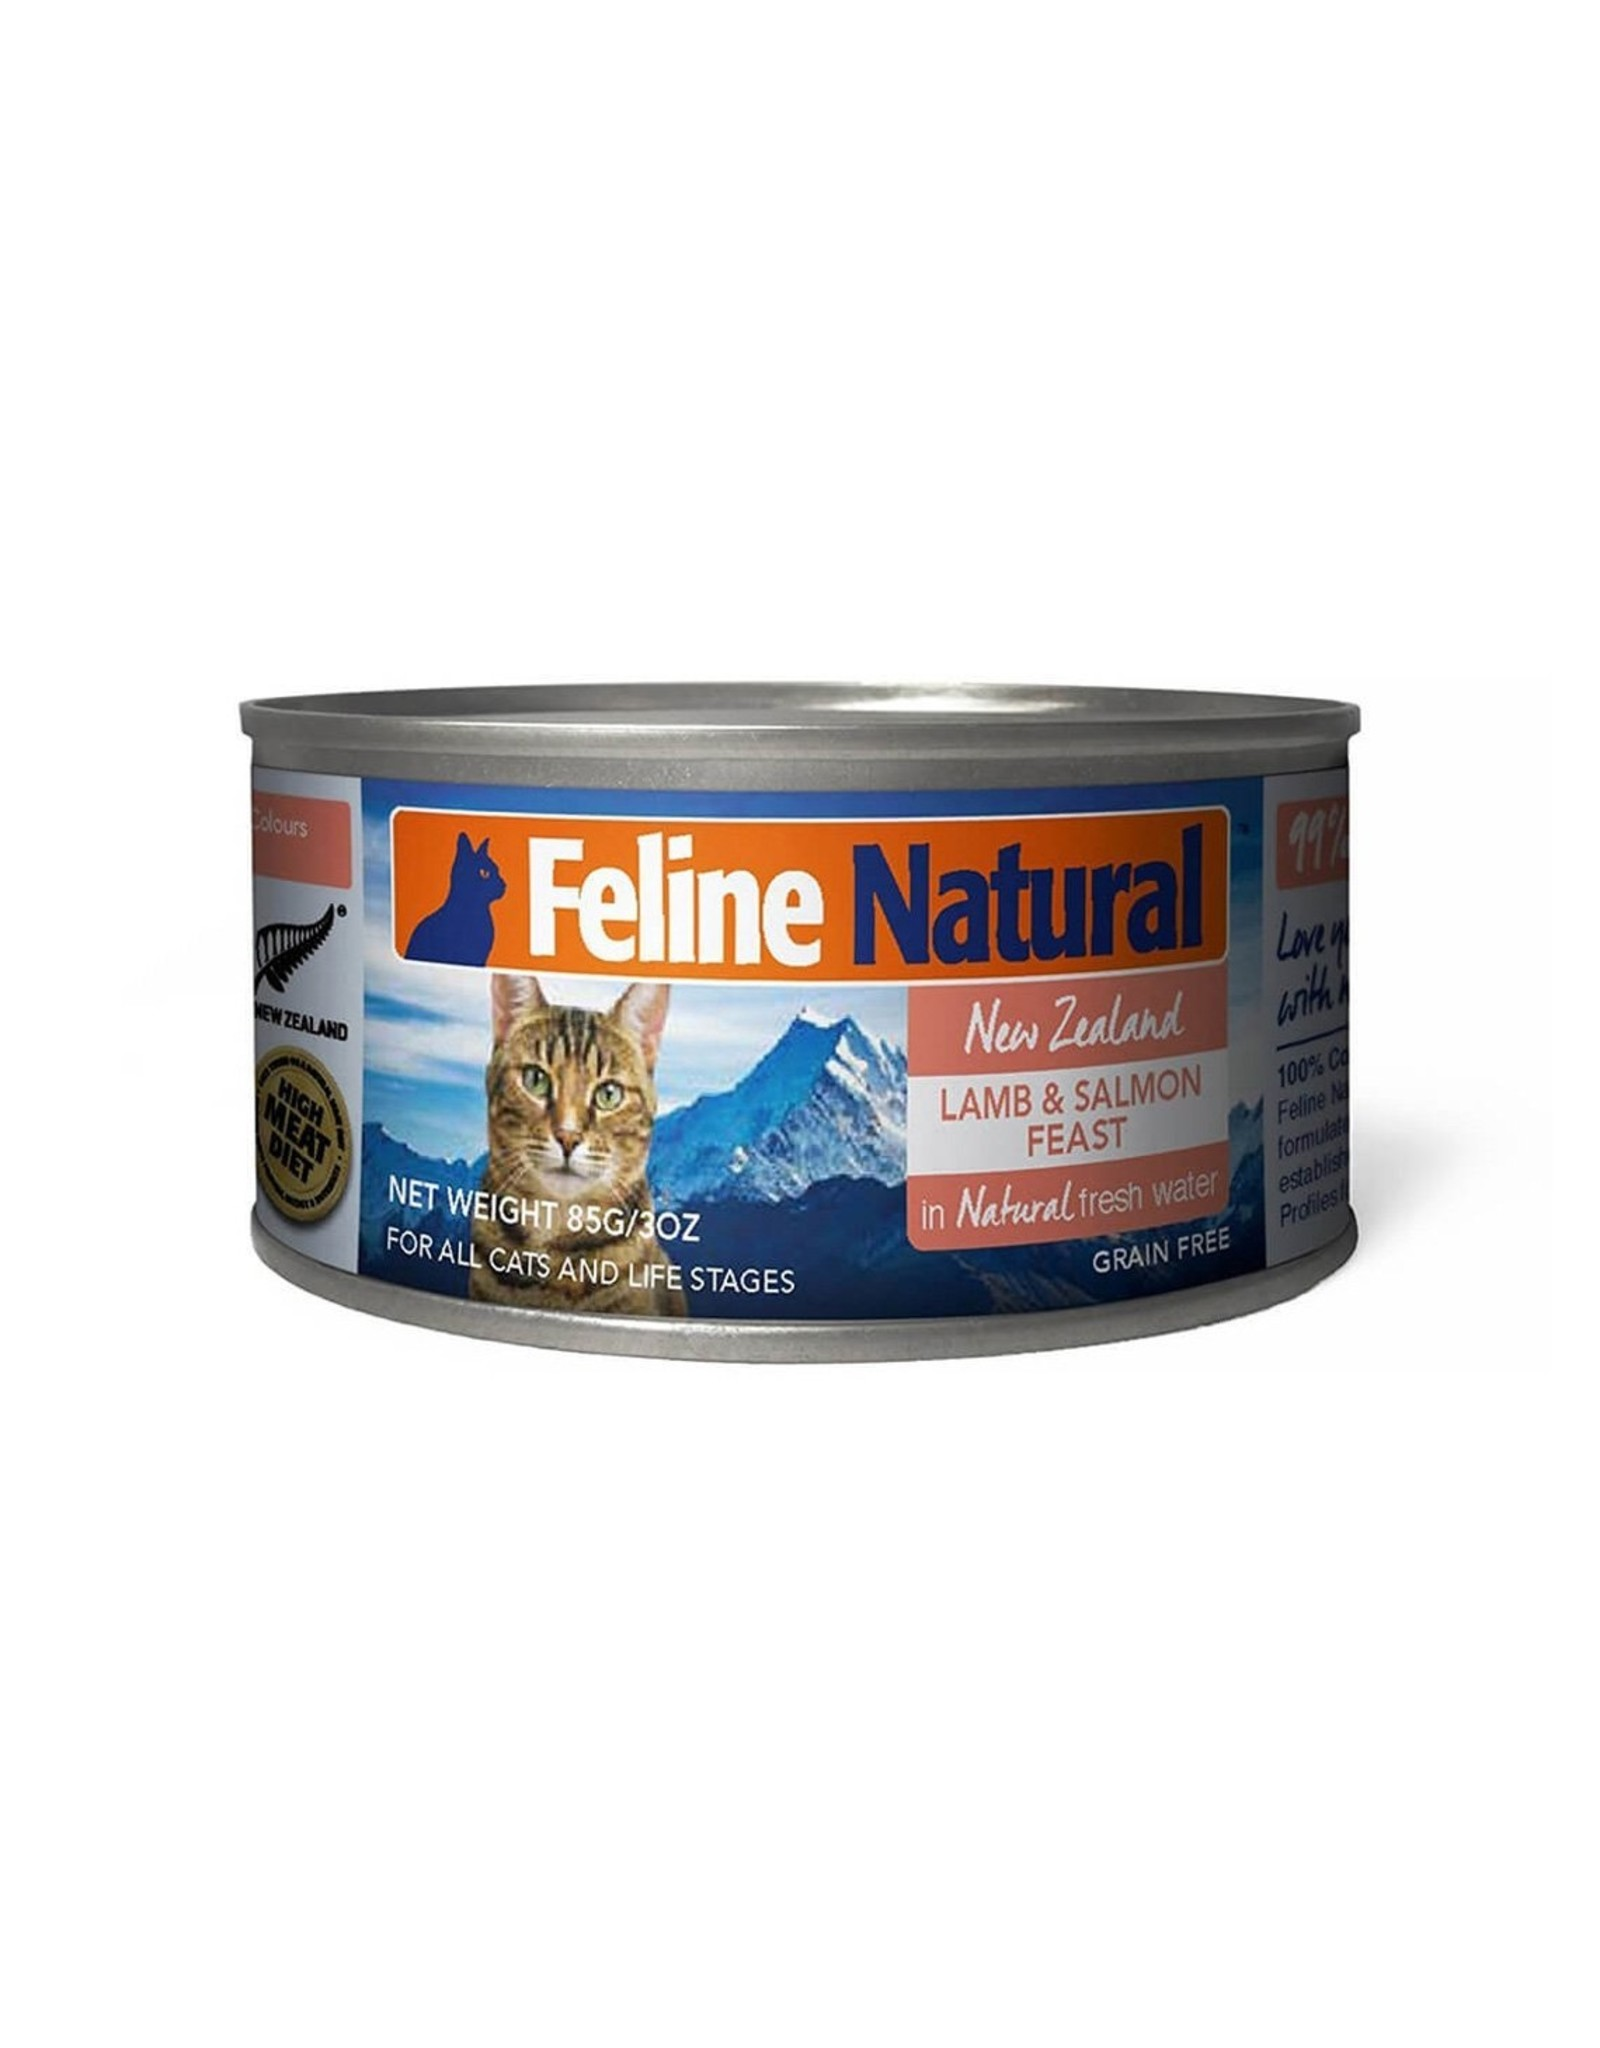 Feline Natural Feline Natural Lamb and King Salmon Feast